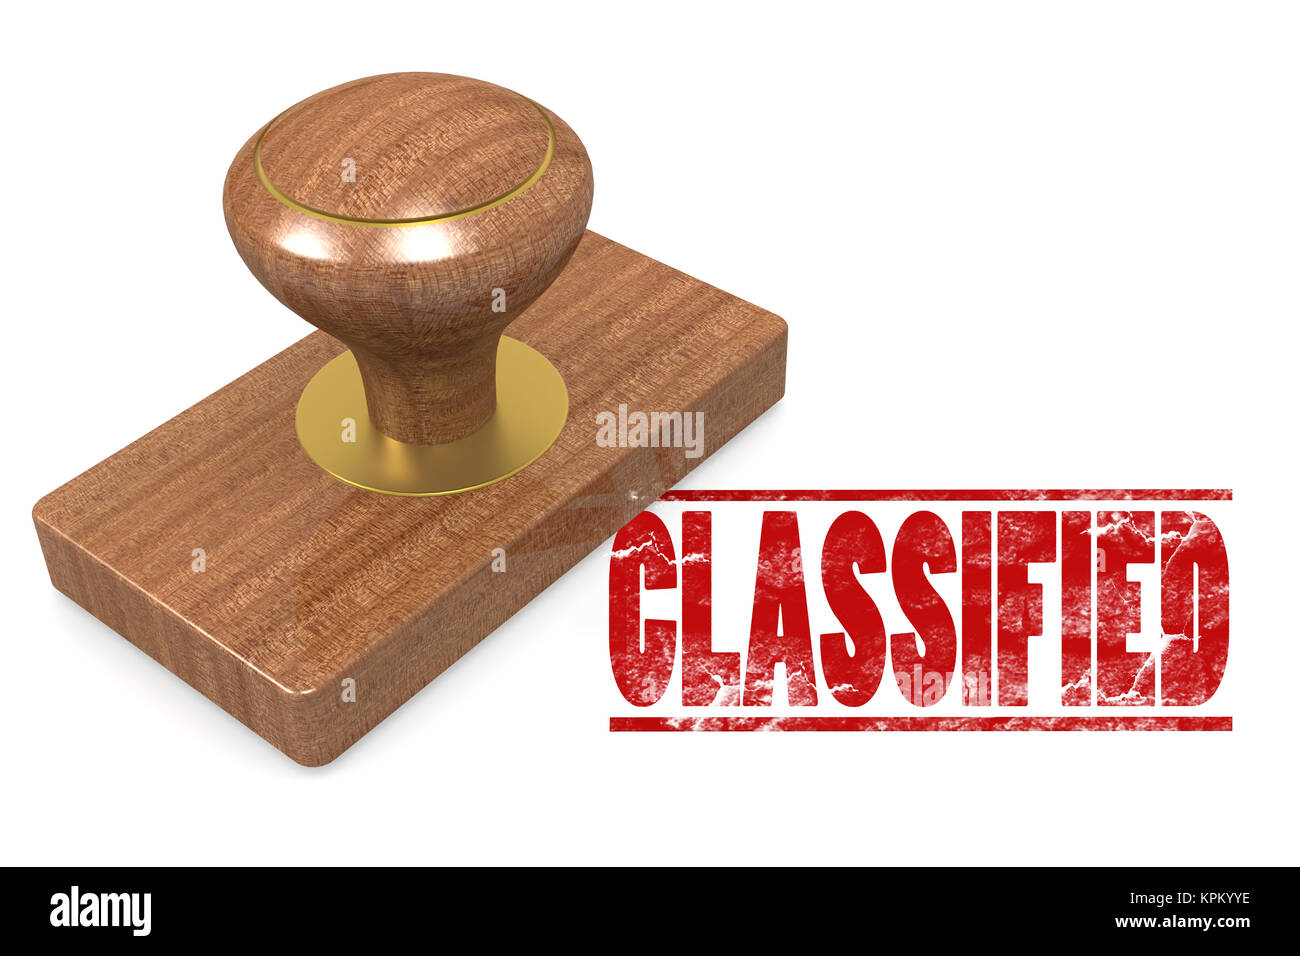 Classified wooded seal stamp - Stock Image